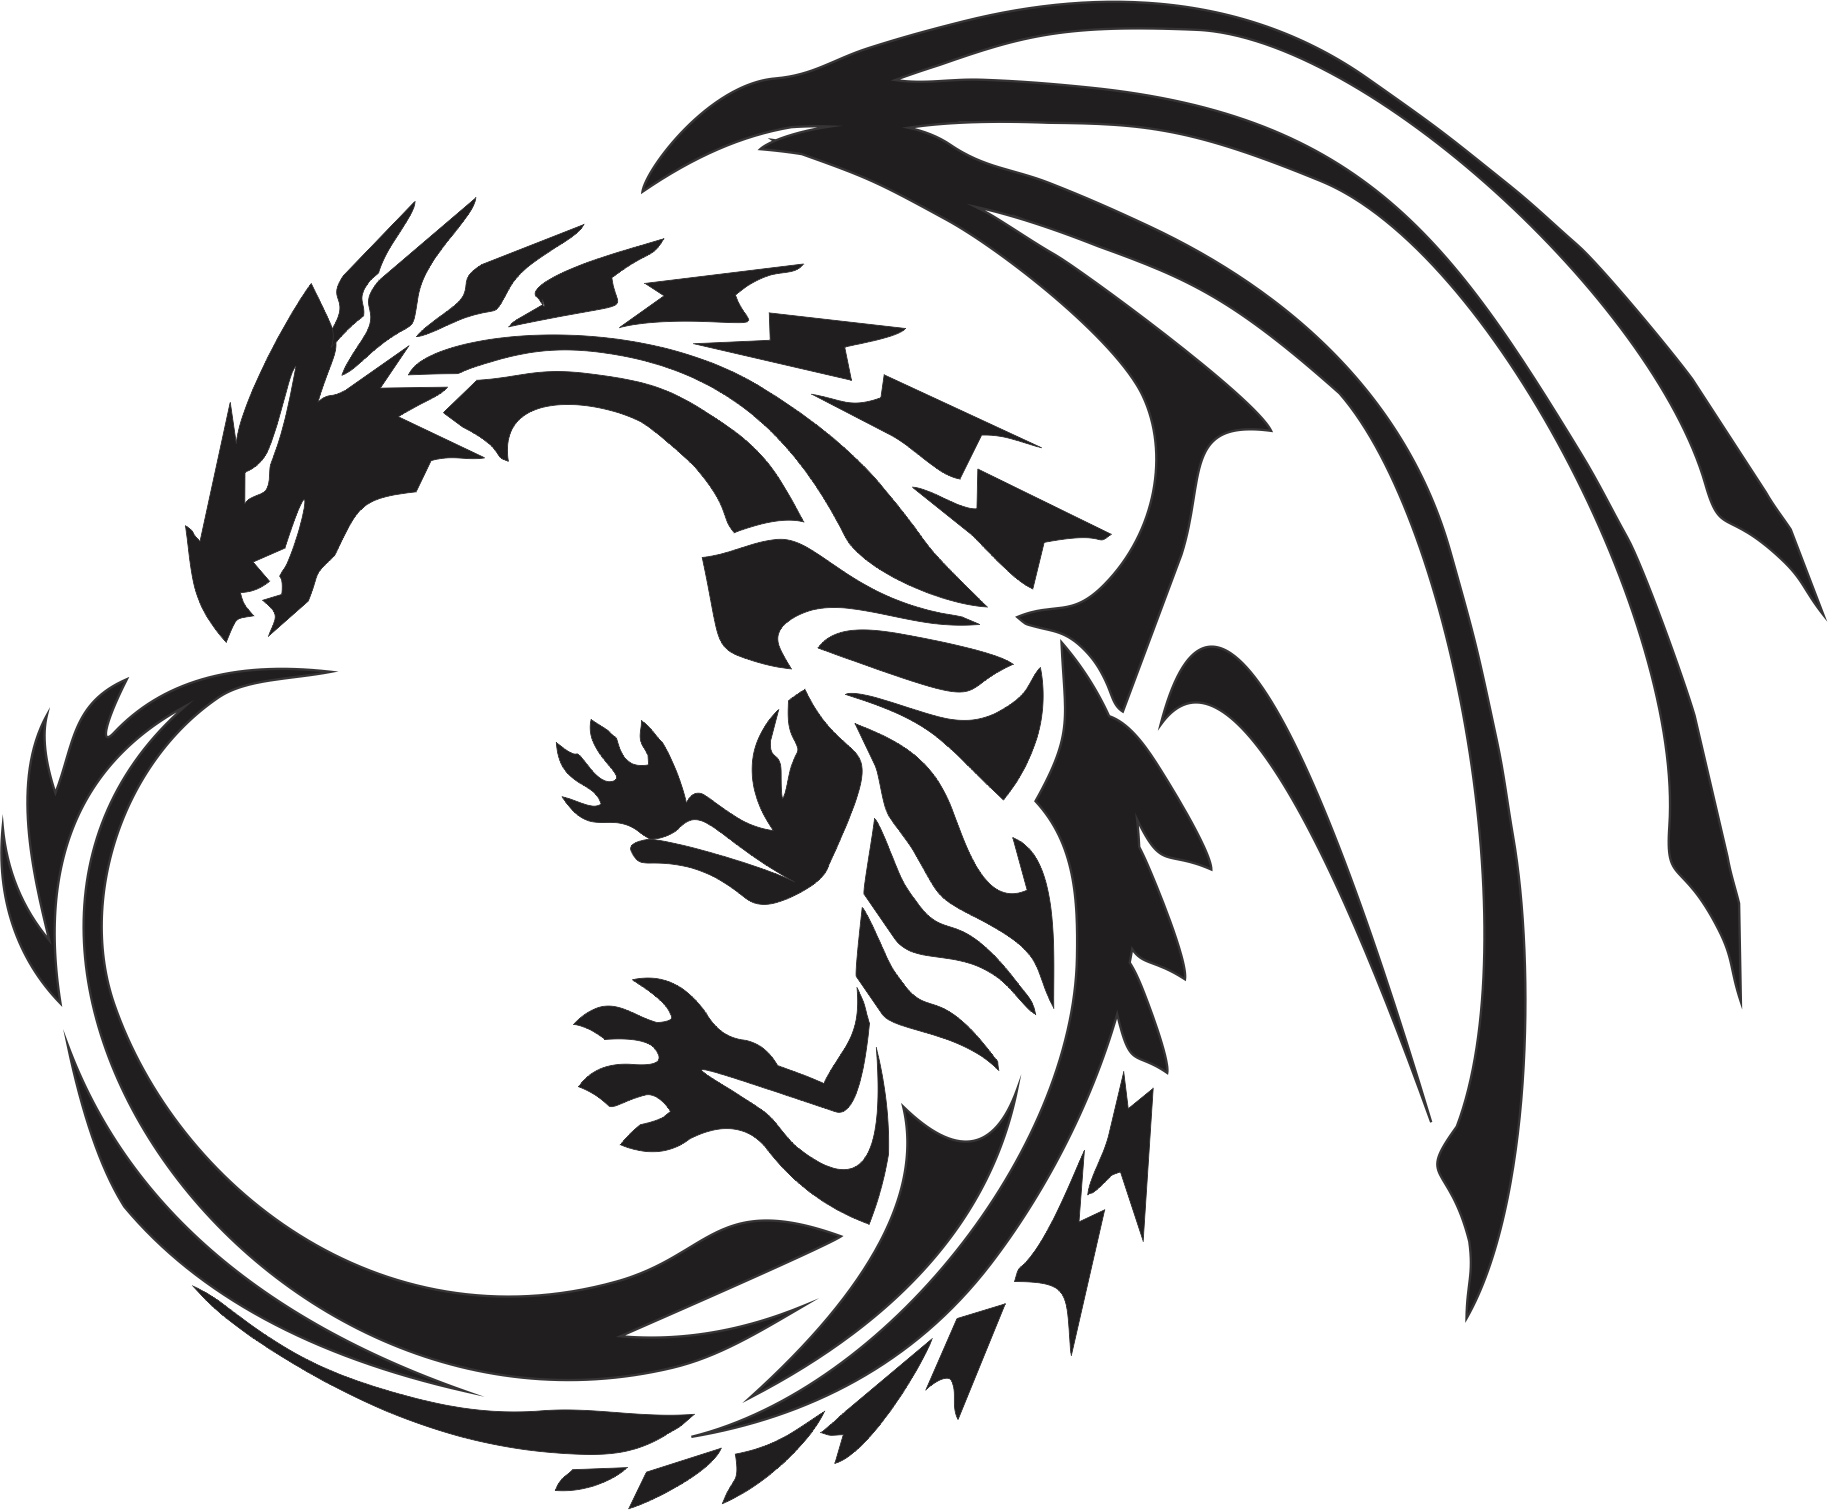 Free Dragon Pictures Clipart image #20238